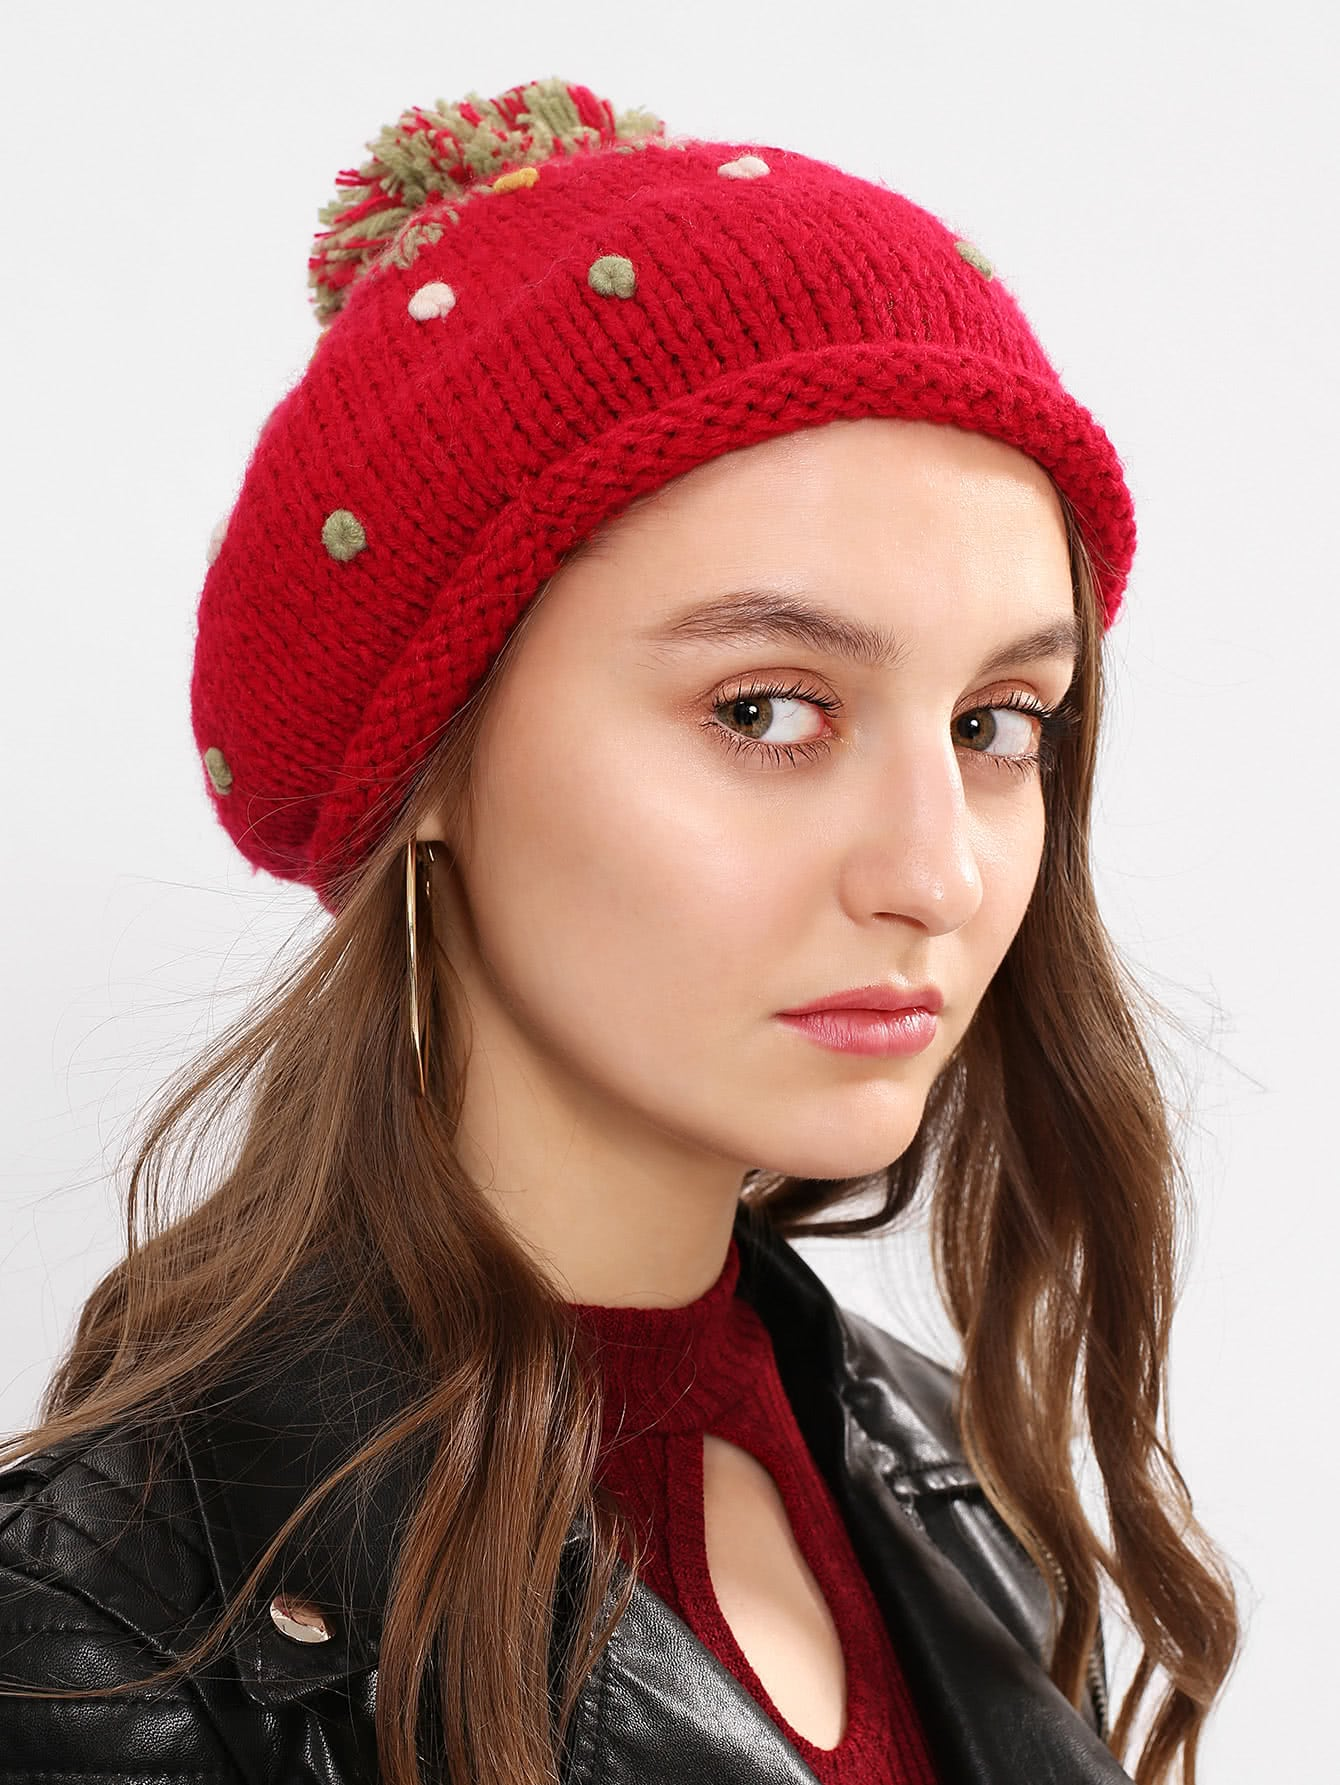 Pom Pom Knit Beanie Hat unisex winter plicate baggy beanie knit crochet ski hat cap red